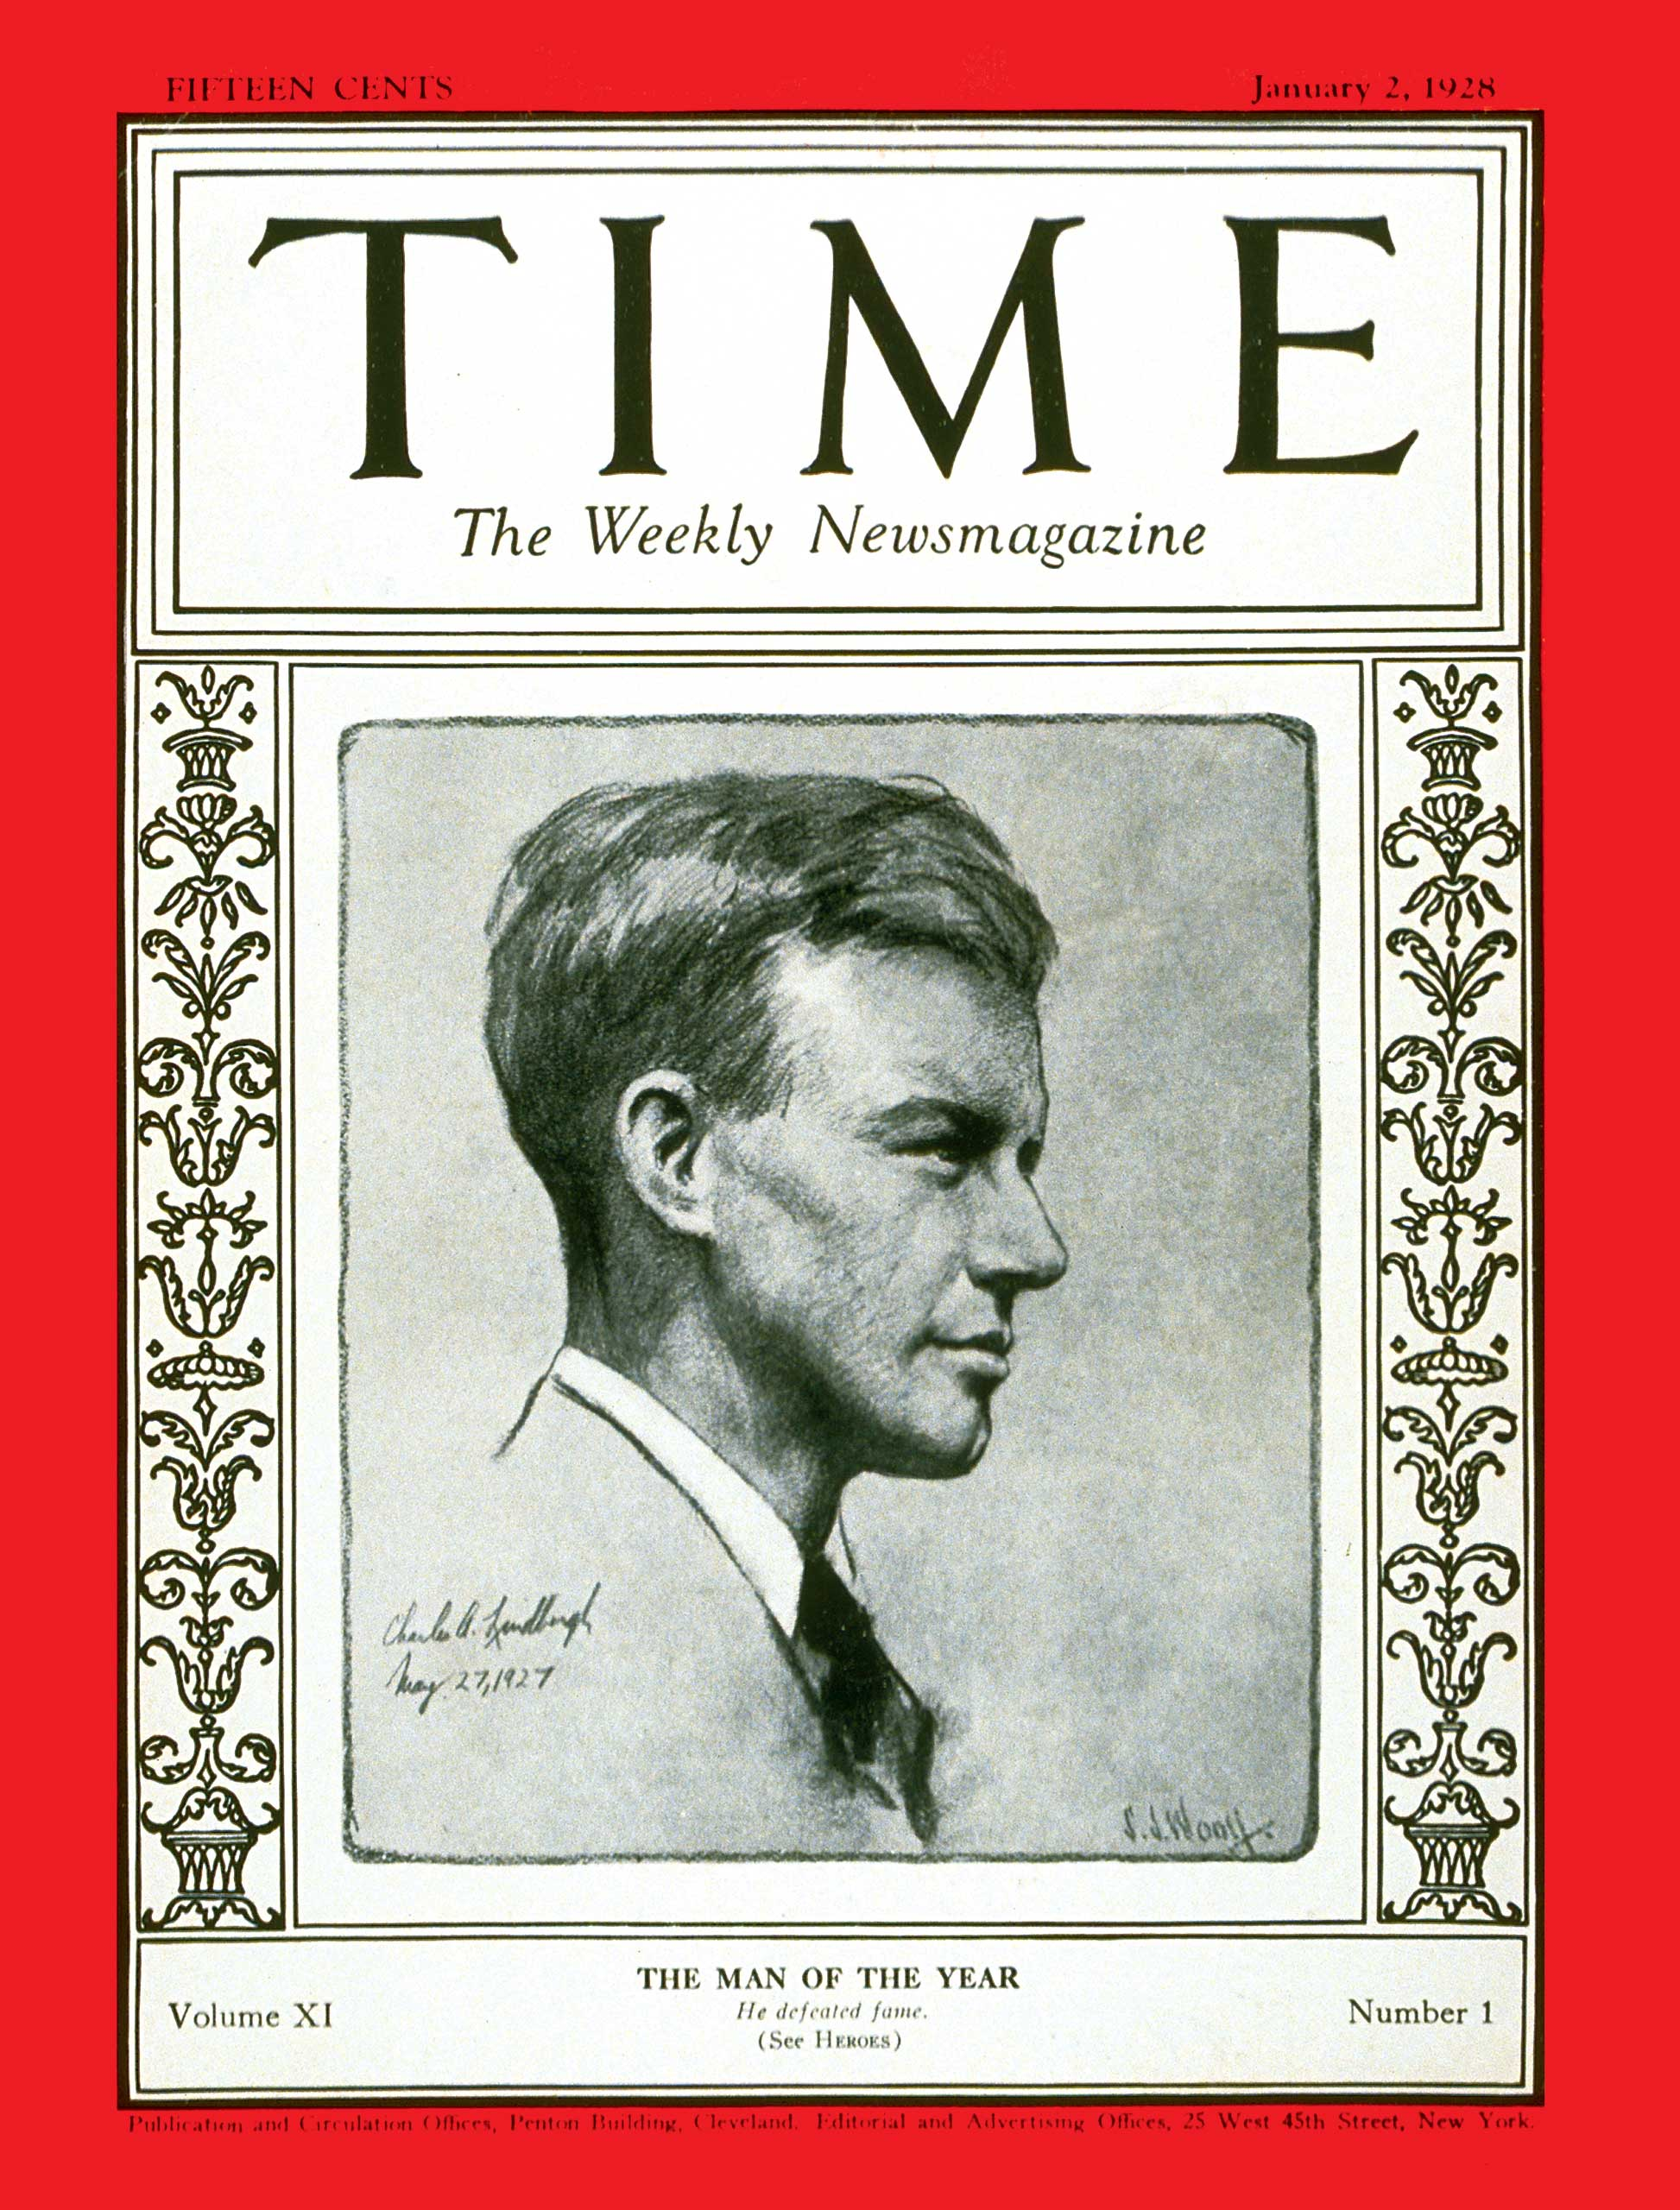 The response to TIME naming Charles Lindbergh its Man of the Year for 1927 prompted the magazine to start the franchise we know today as Person of the Year.